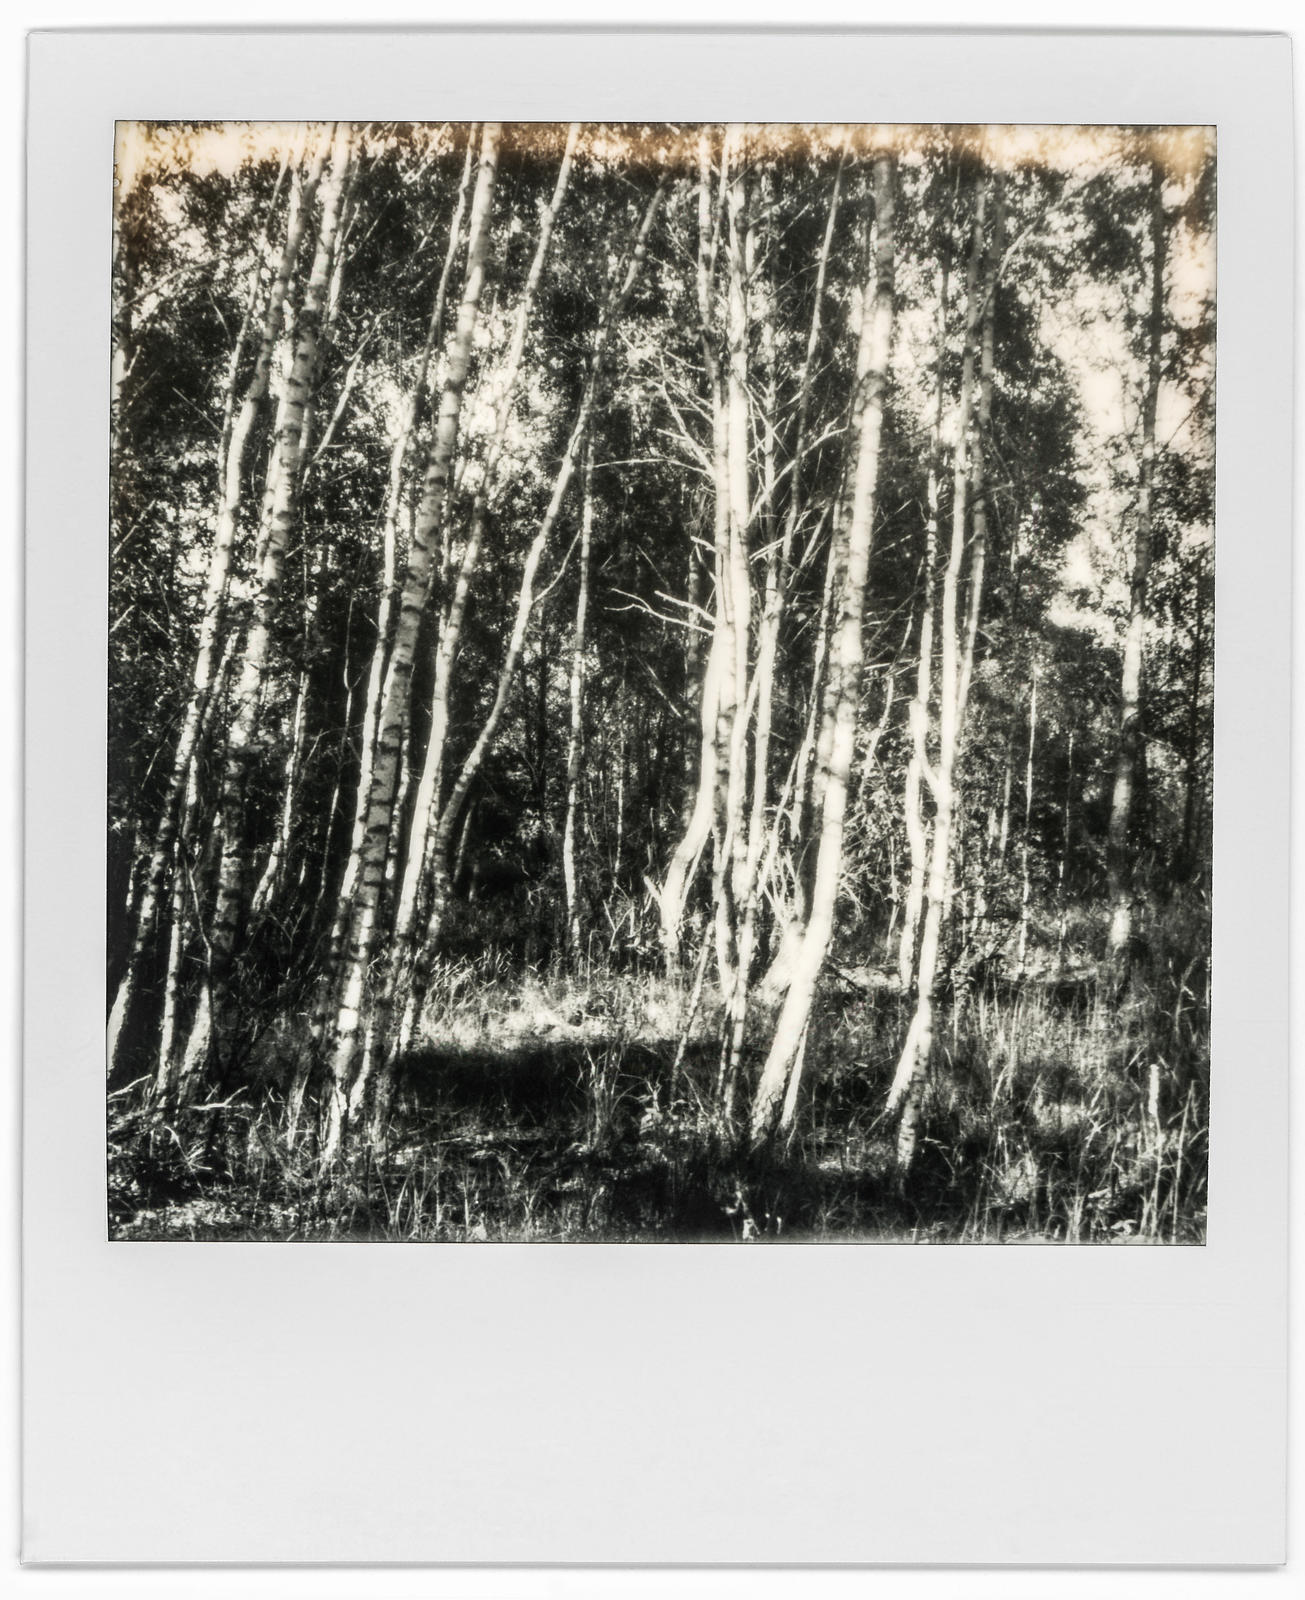 photo-polaroid-tchernobyl-chernobyl-35